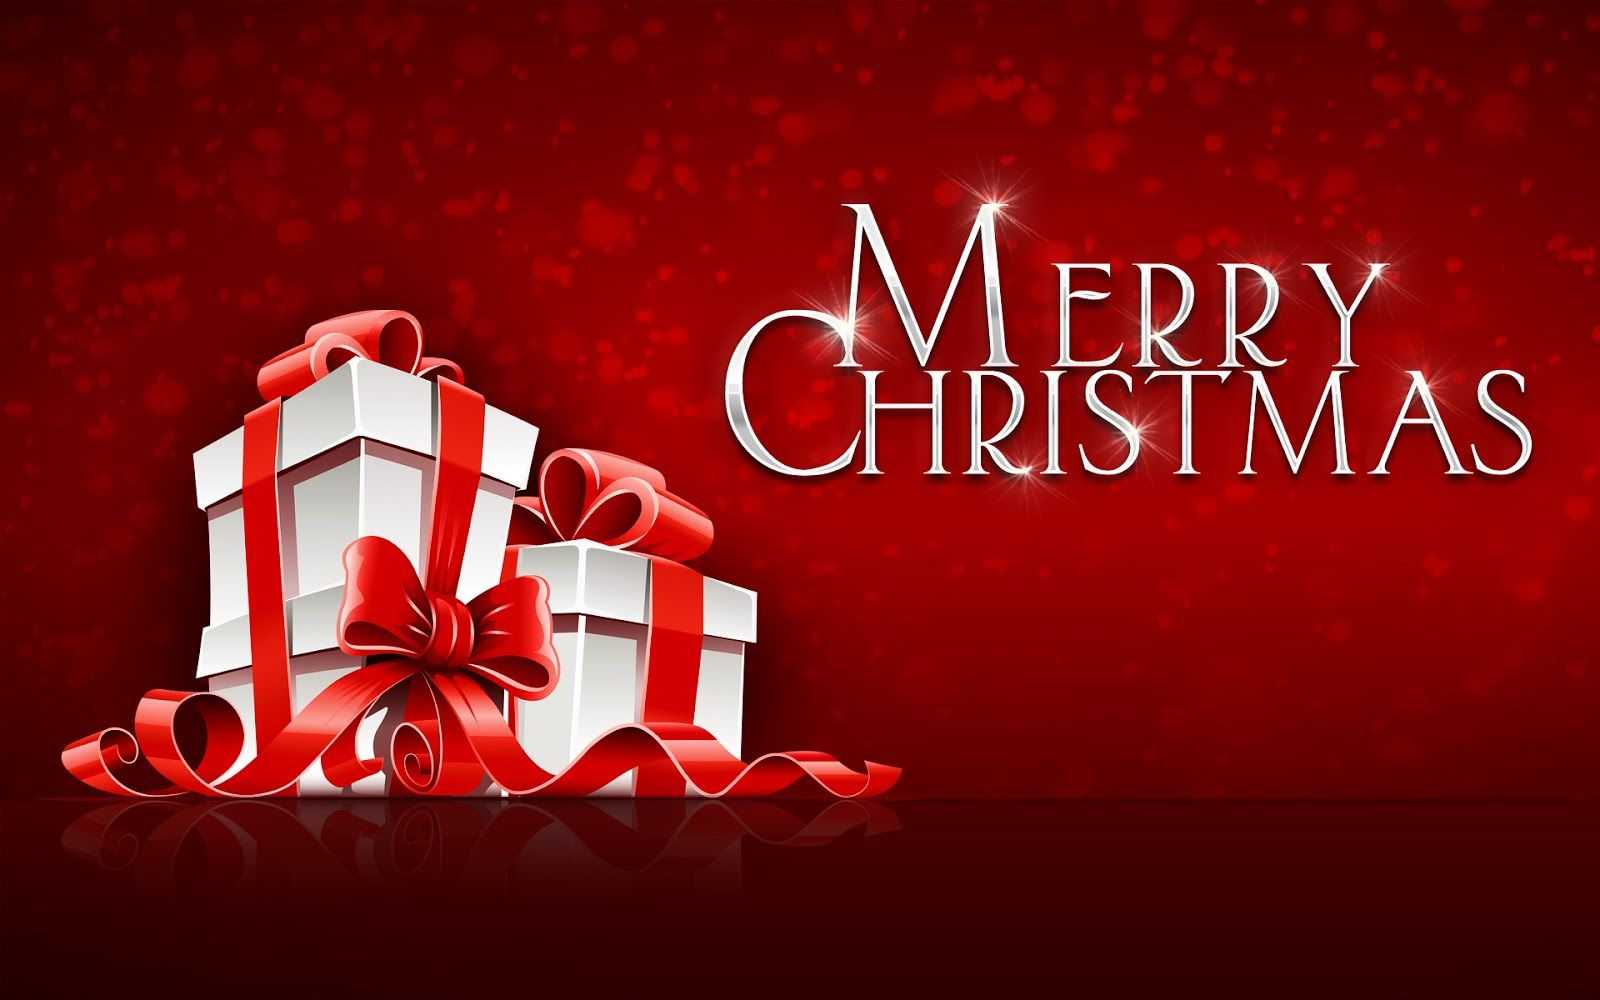 Best Merry Christmas Greetings Cards Wishes Quotes 2017 Dear